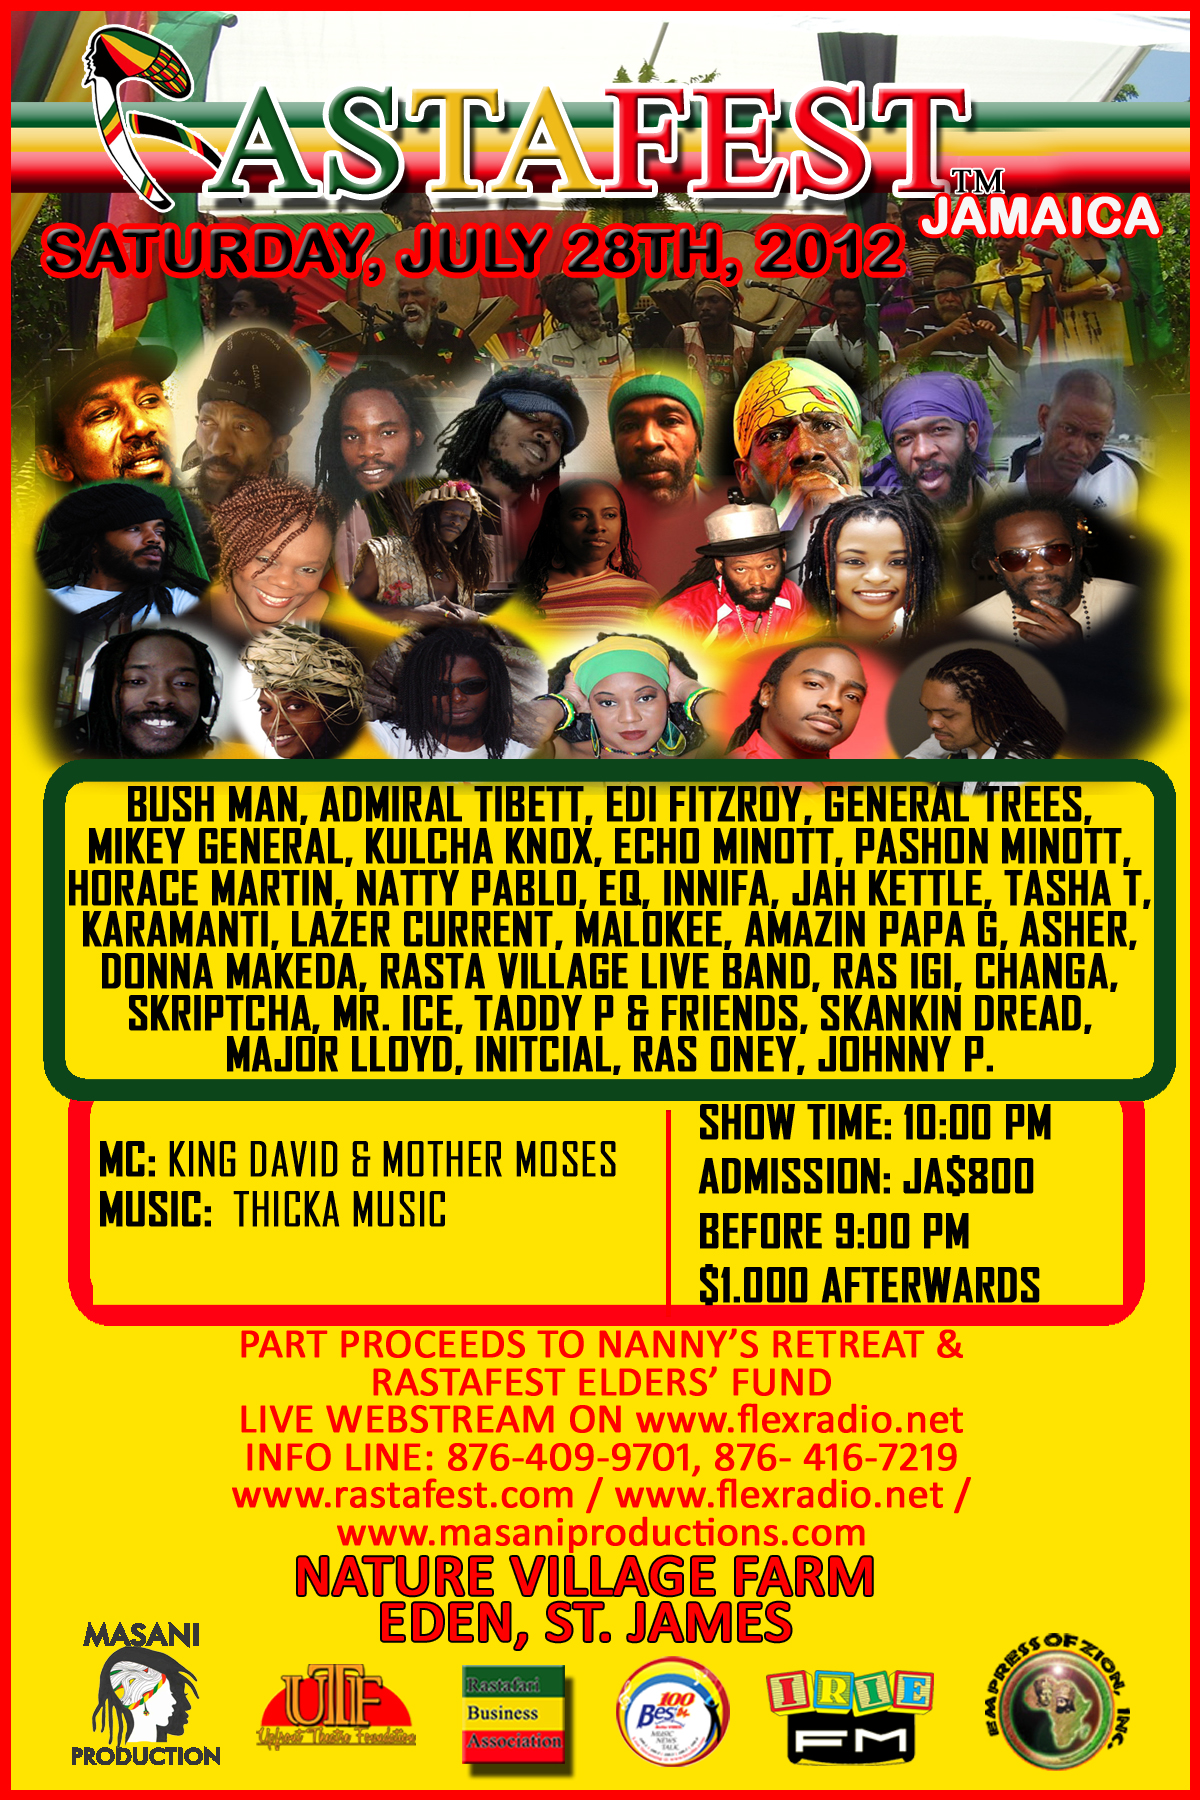 ALL ROADS LEADS TO RASTA FEST JAMAICA